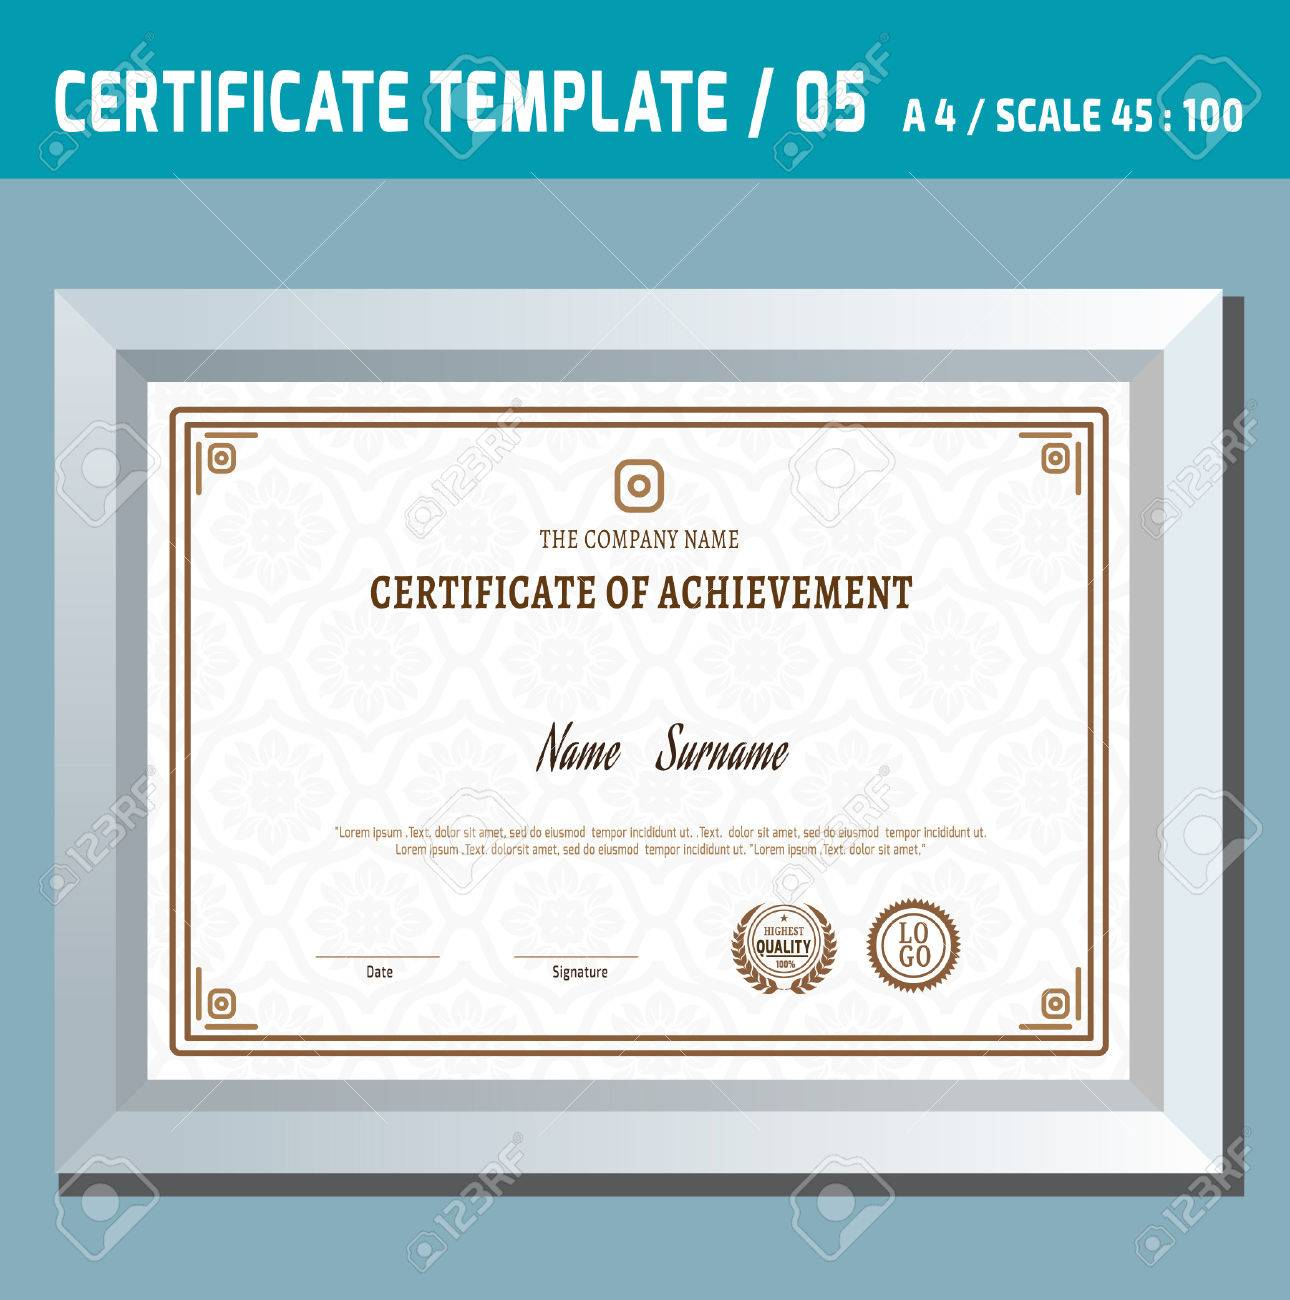 Certificate templatea4ctor design templatentage retro certificate templatea4ctor design templatentage retro frame diploma background stock yadclub Image collections